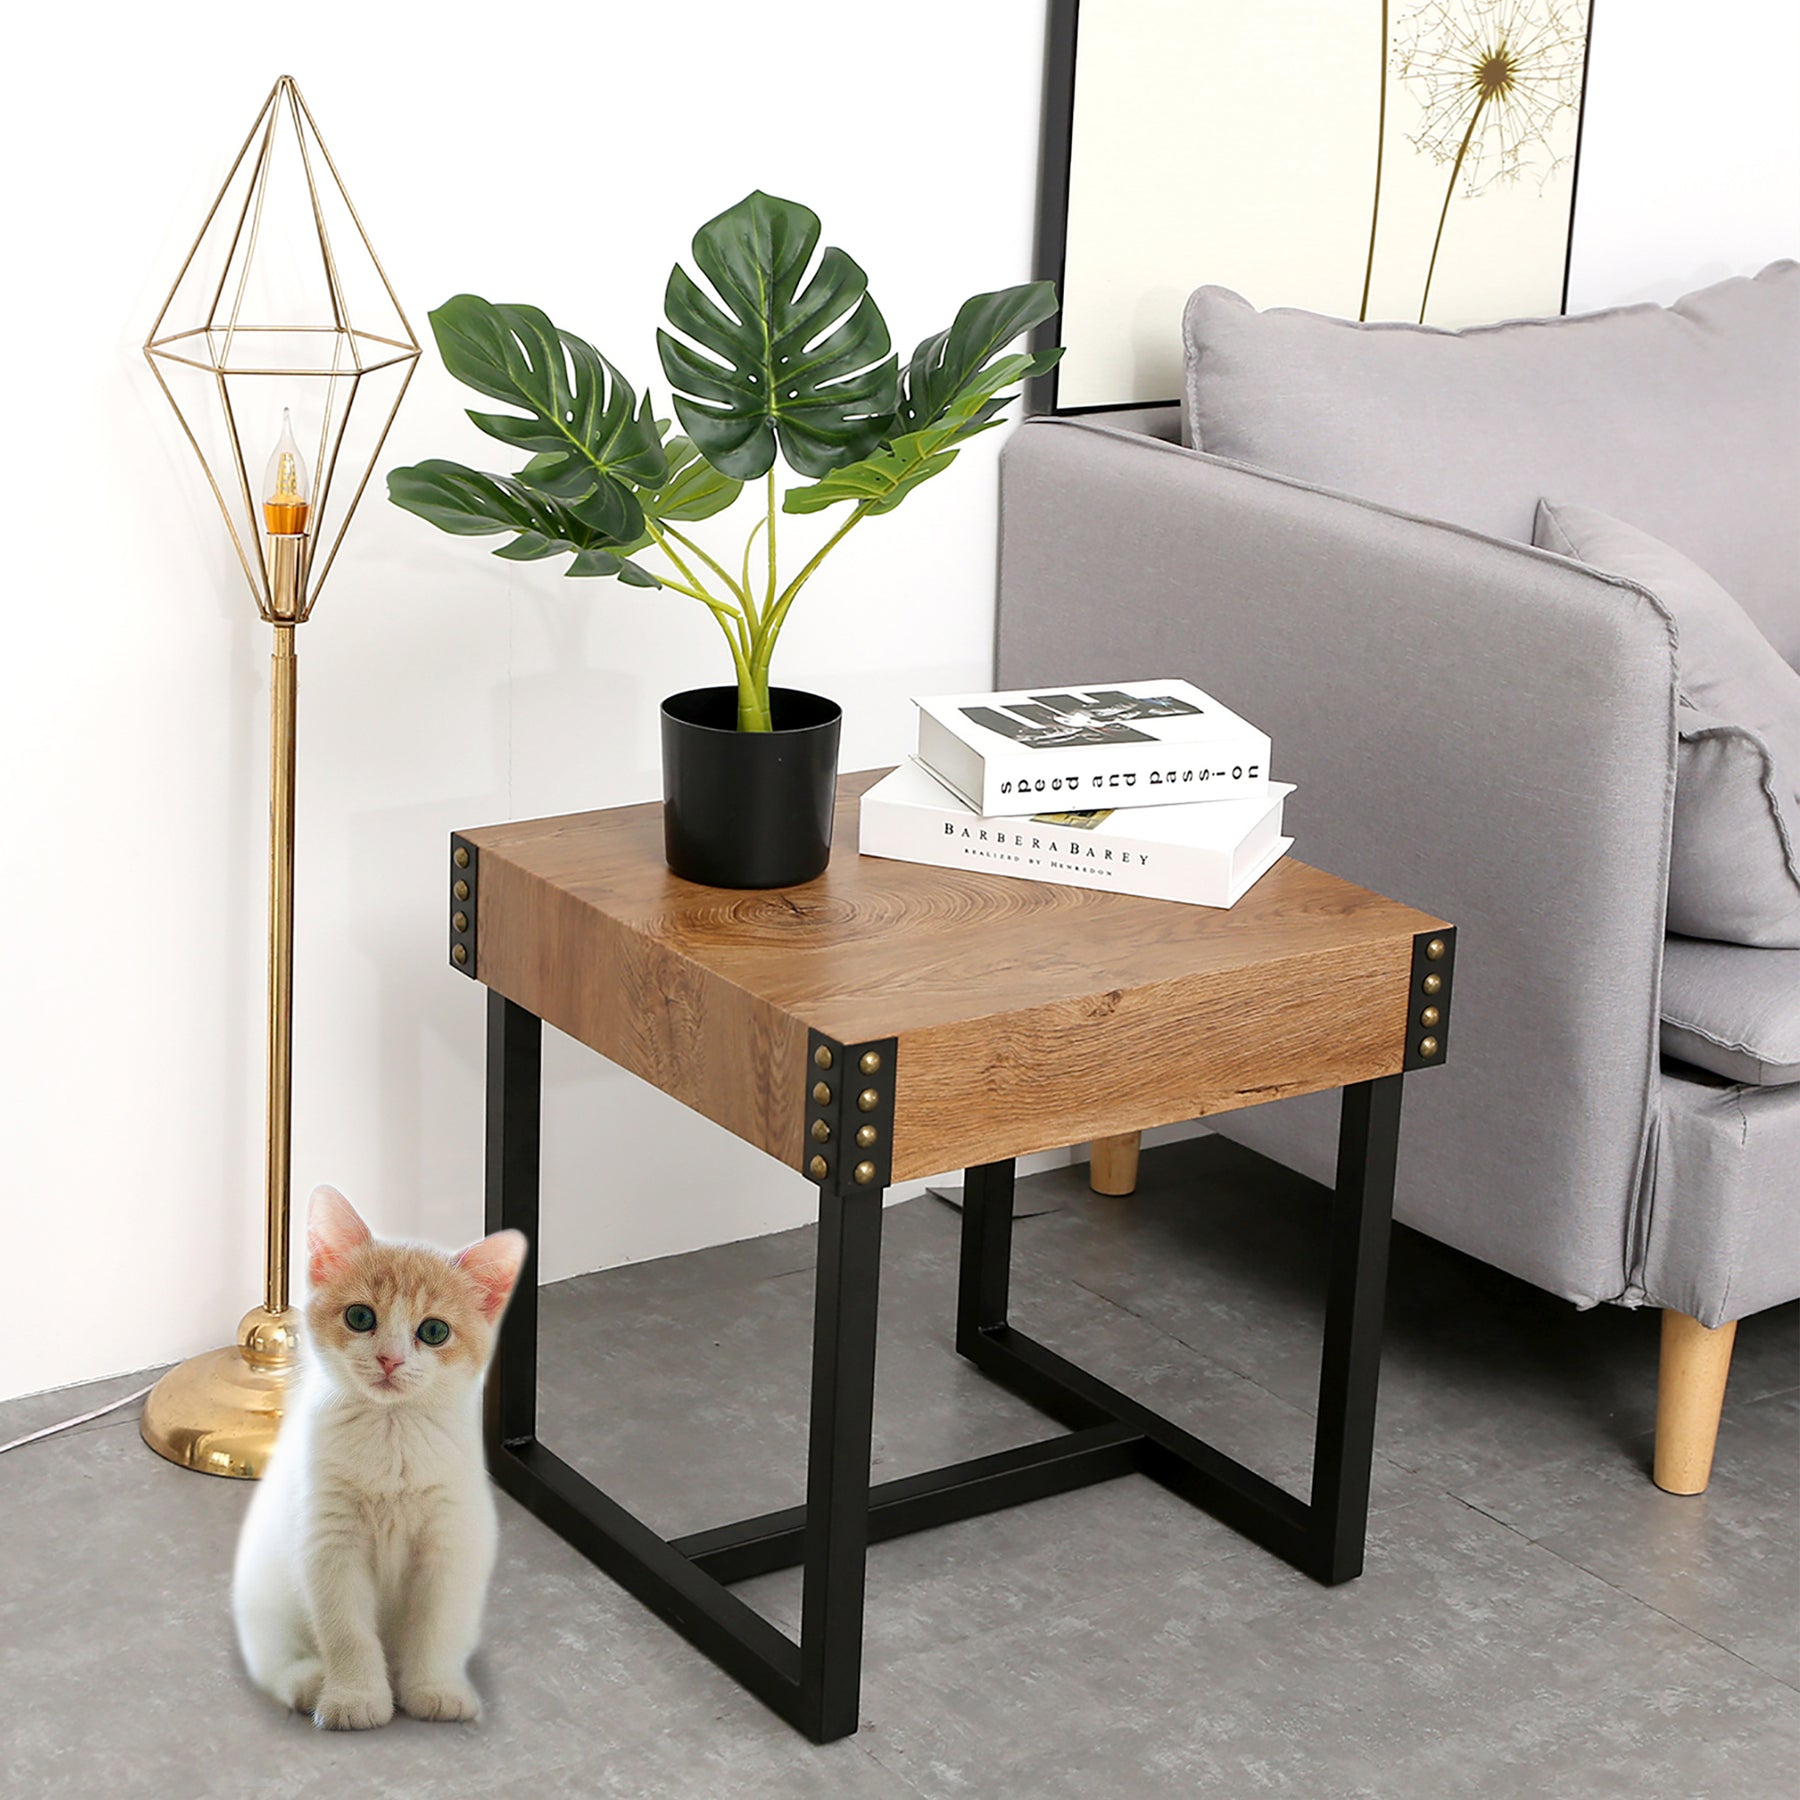 Mcombo End Tables Side Table Night Stand Rustic Modern Style With Thic — Mcombo